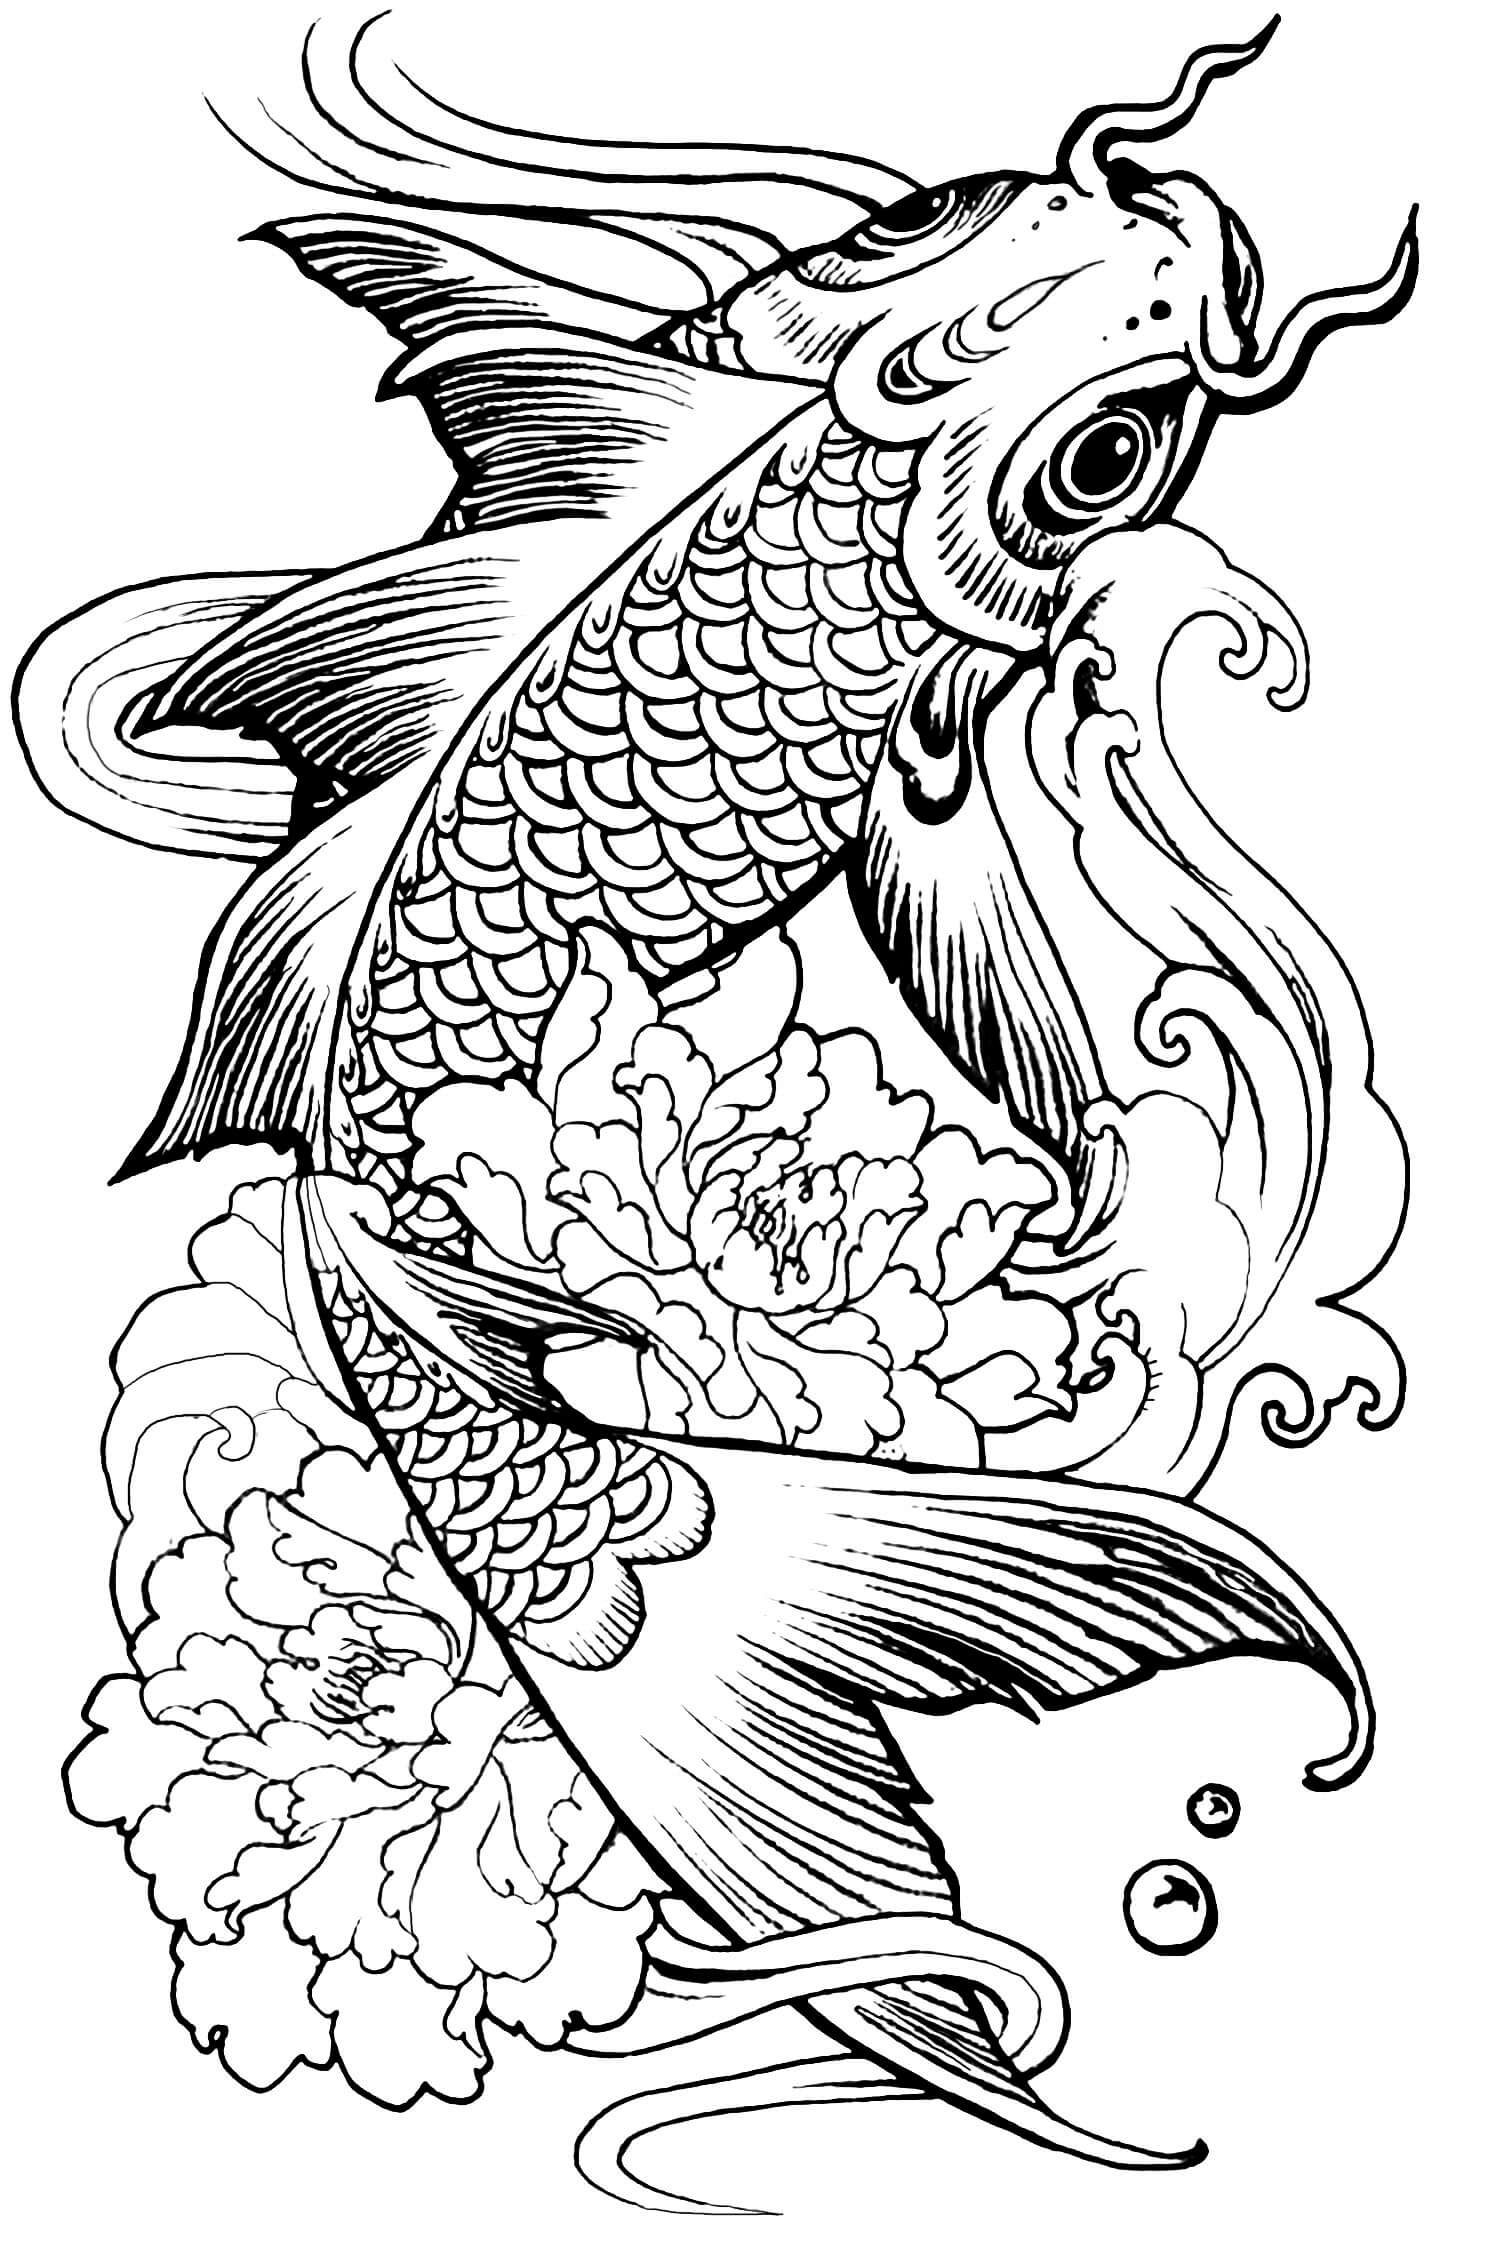 coloring kids pictures cute animal coloring pages best coloring pages for kids coloring pictures kids